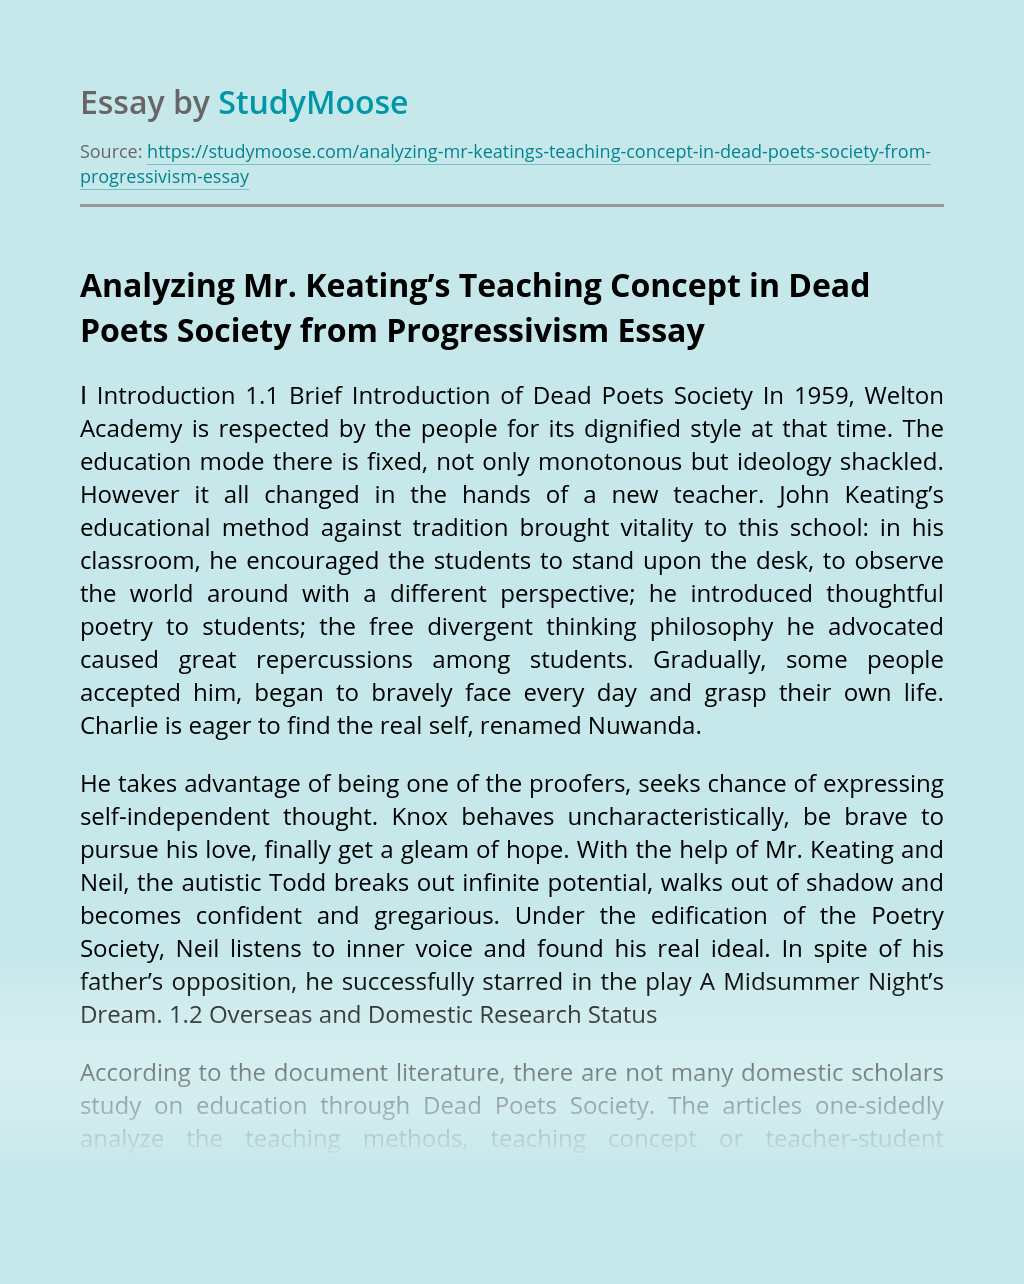 Analyzing Mr. Keating's Teaching Concept in Dead Poets Society from Progressivism